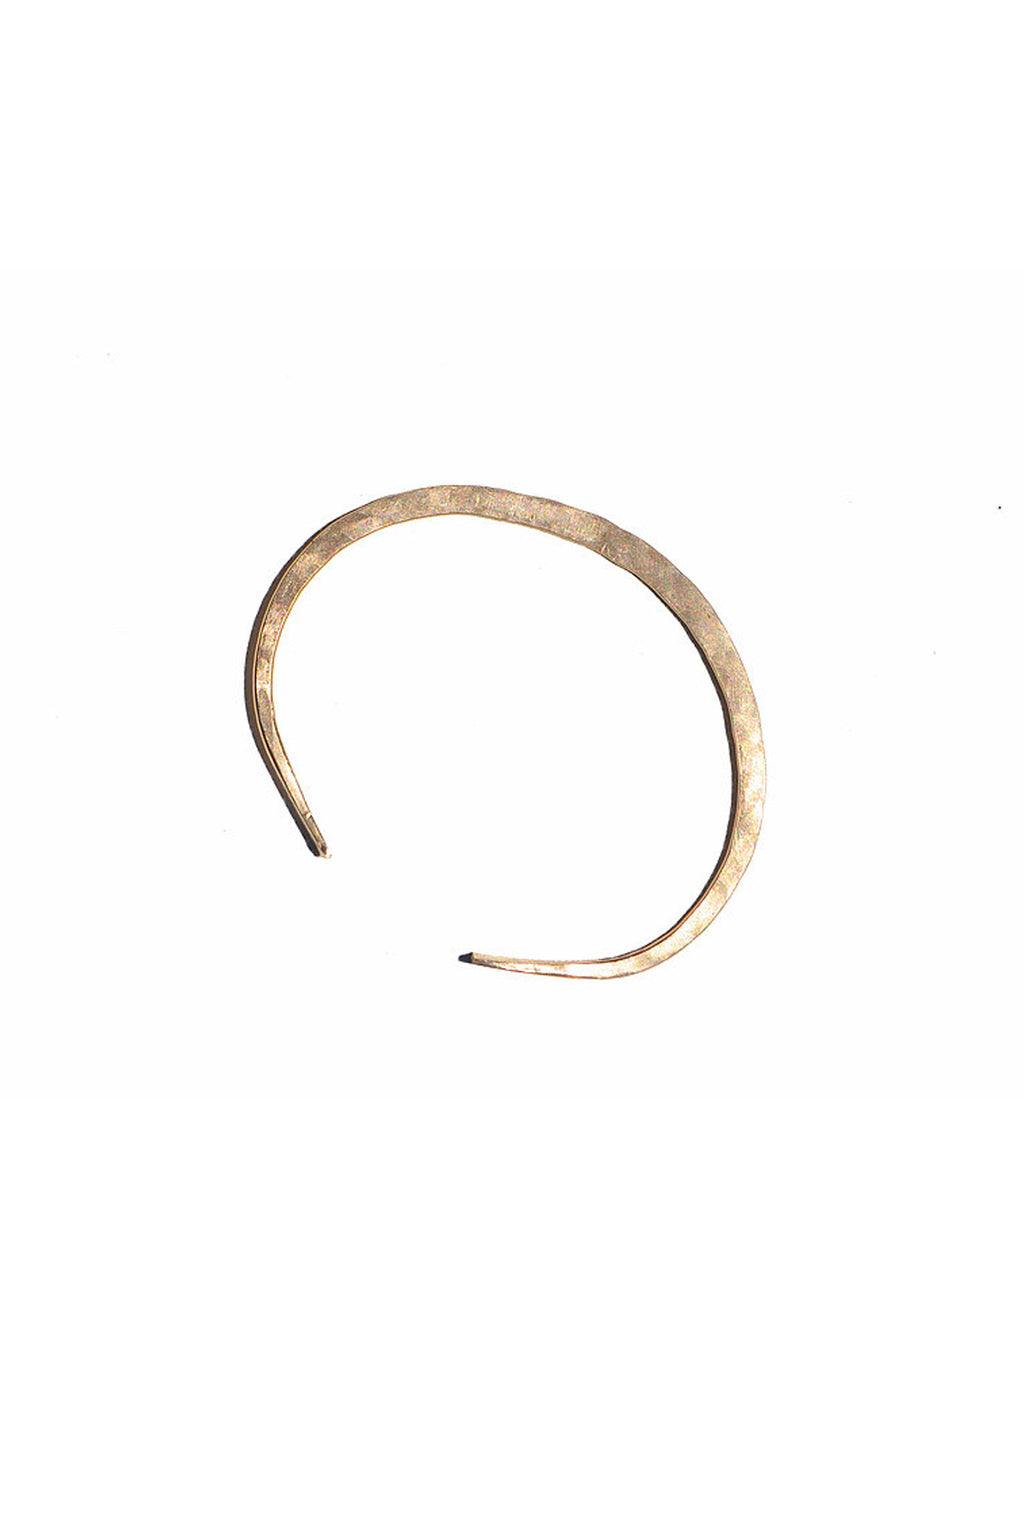 Arc Cuff - Housgoods